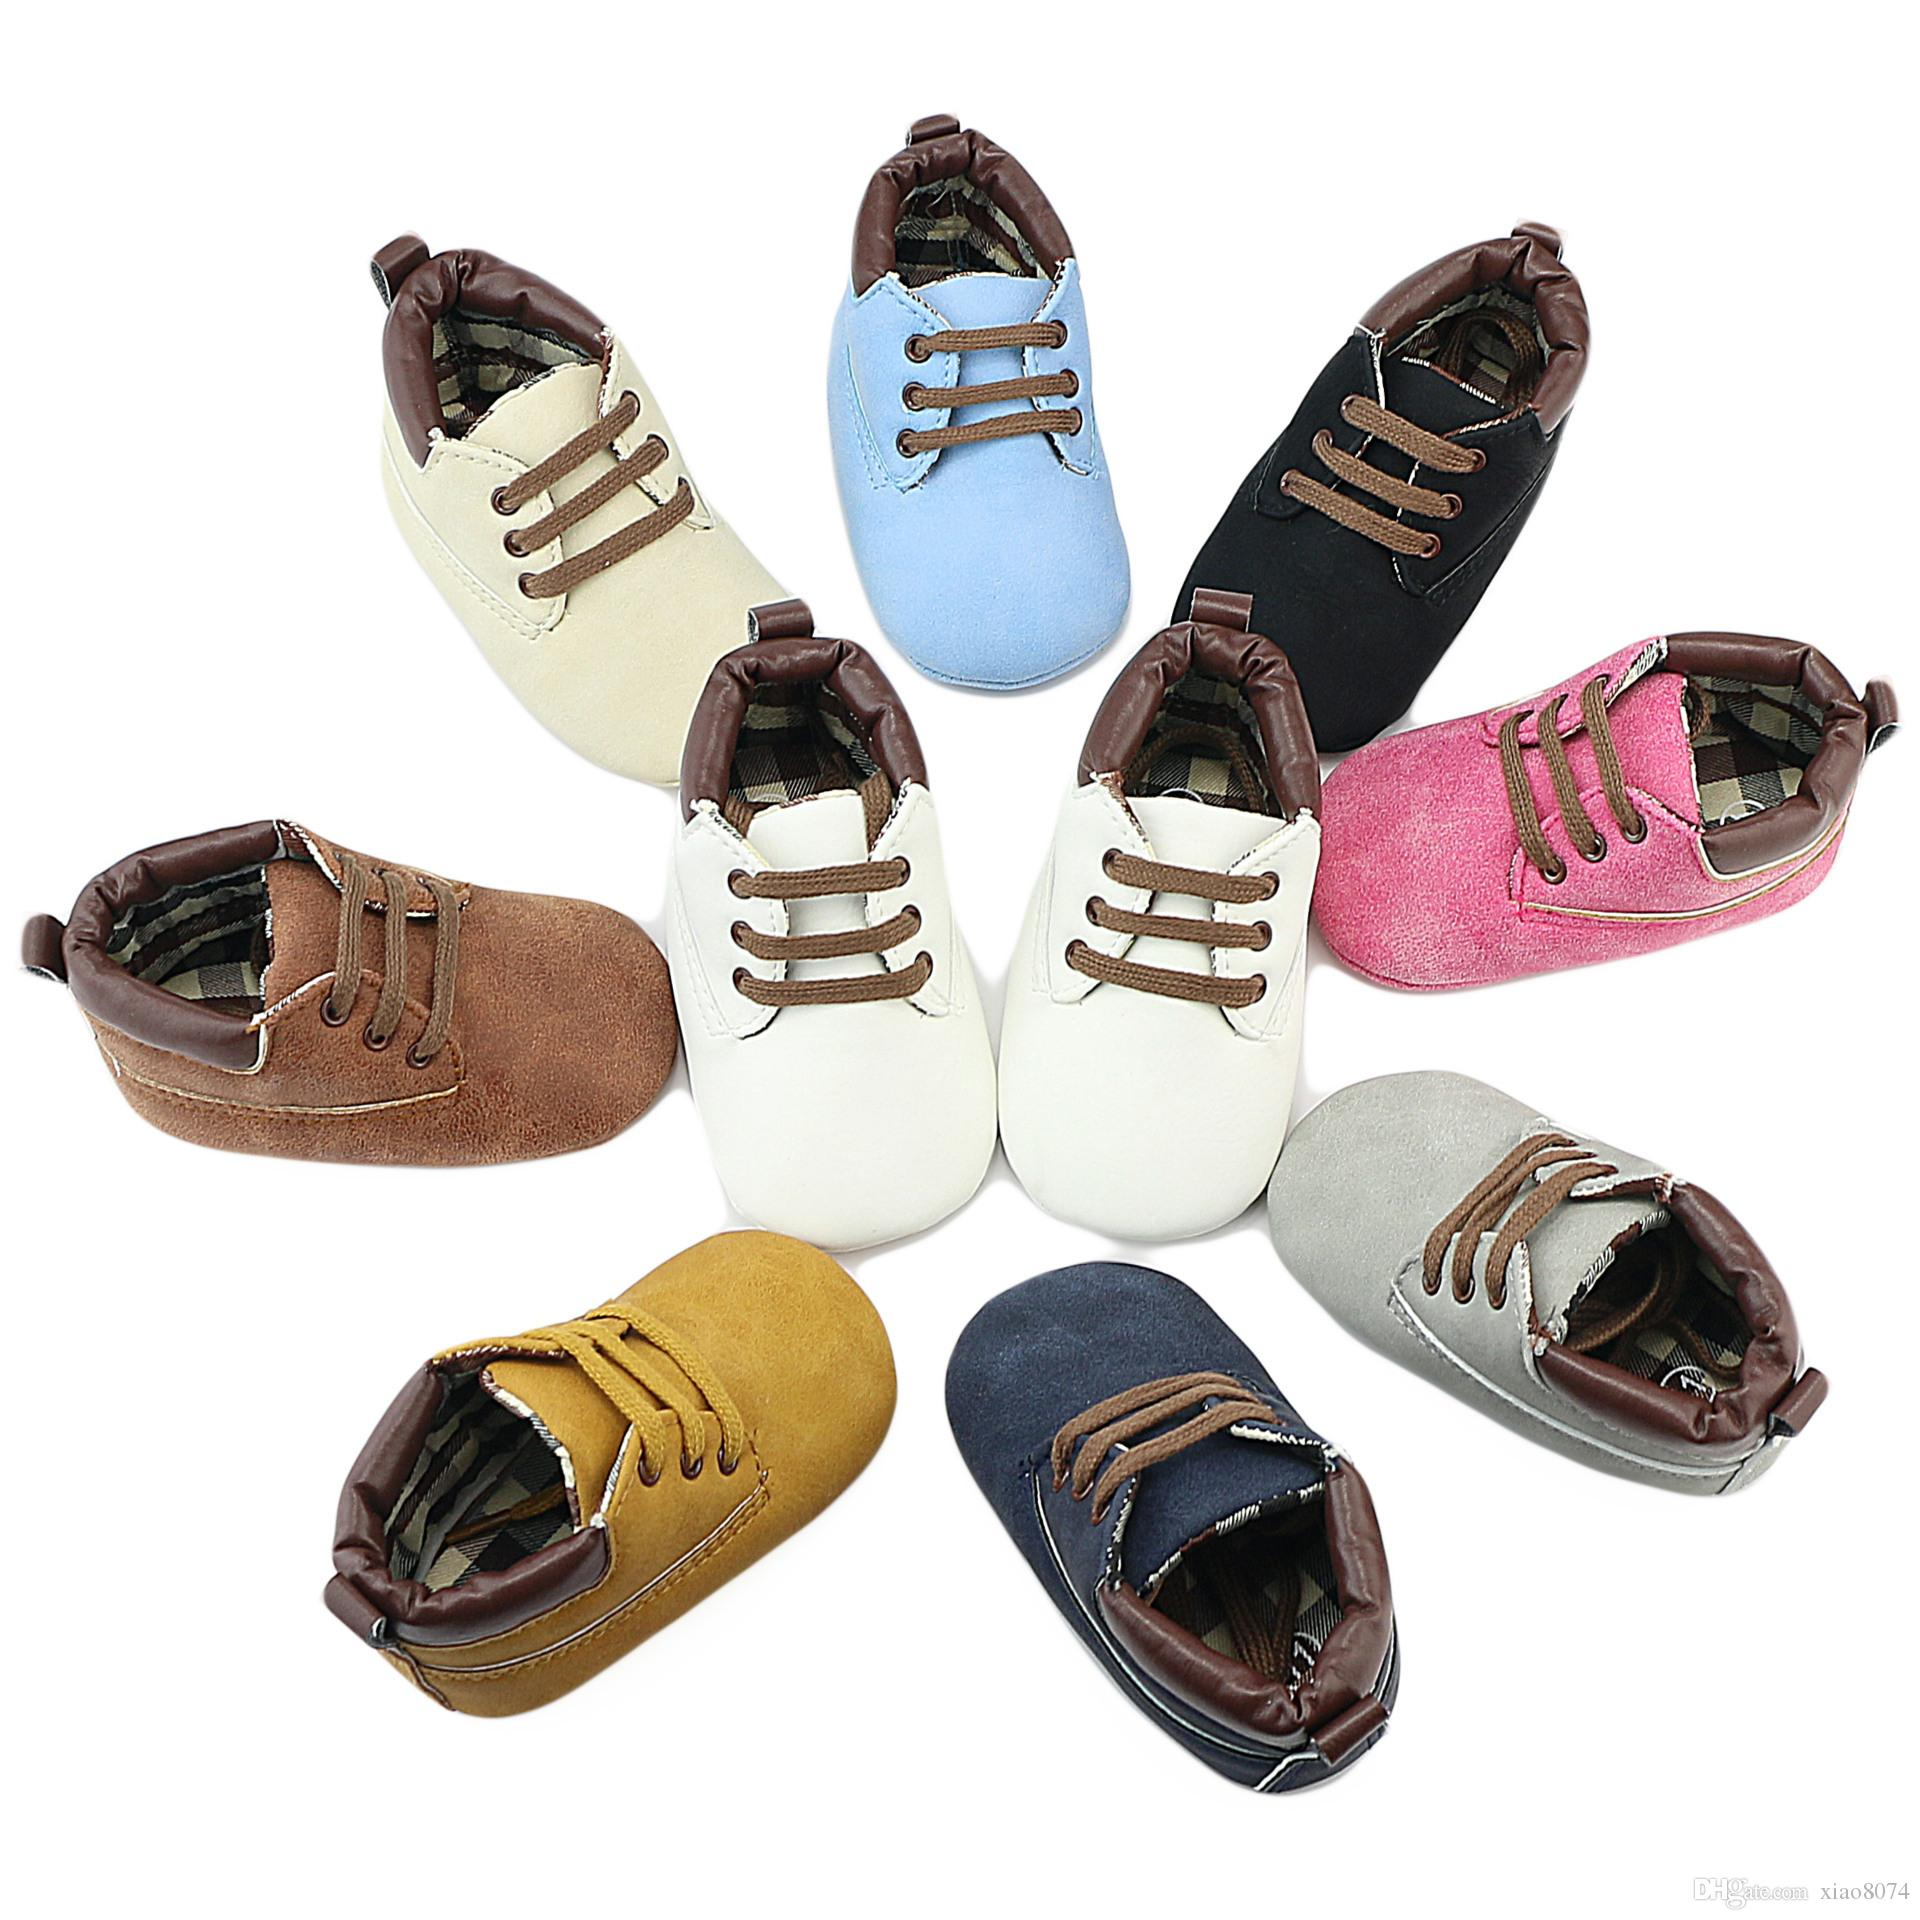 New Infant Toddler Newborn Baby Shoes Kids Baby Girls Boys Shoes